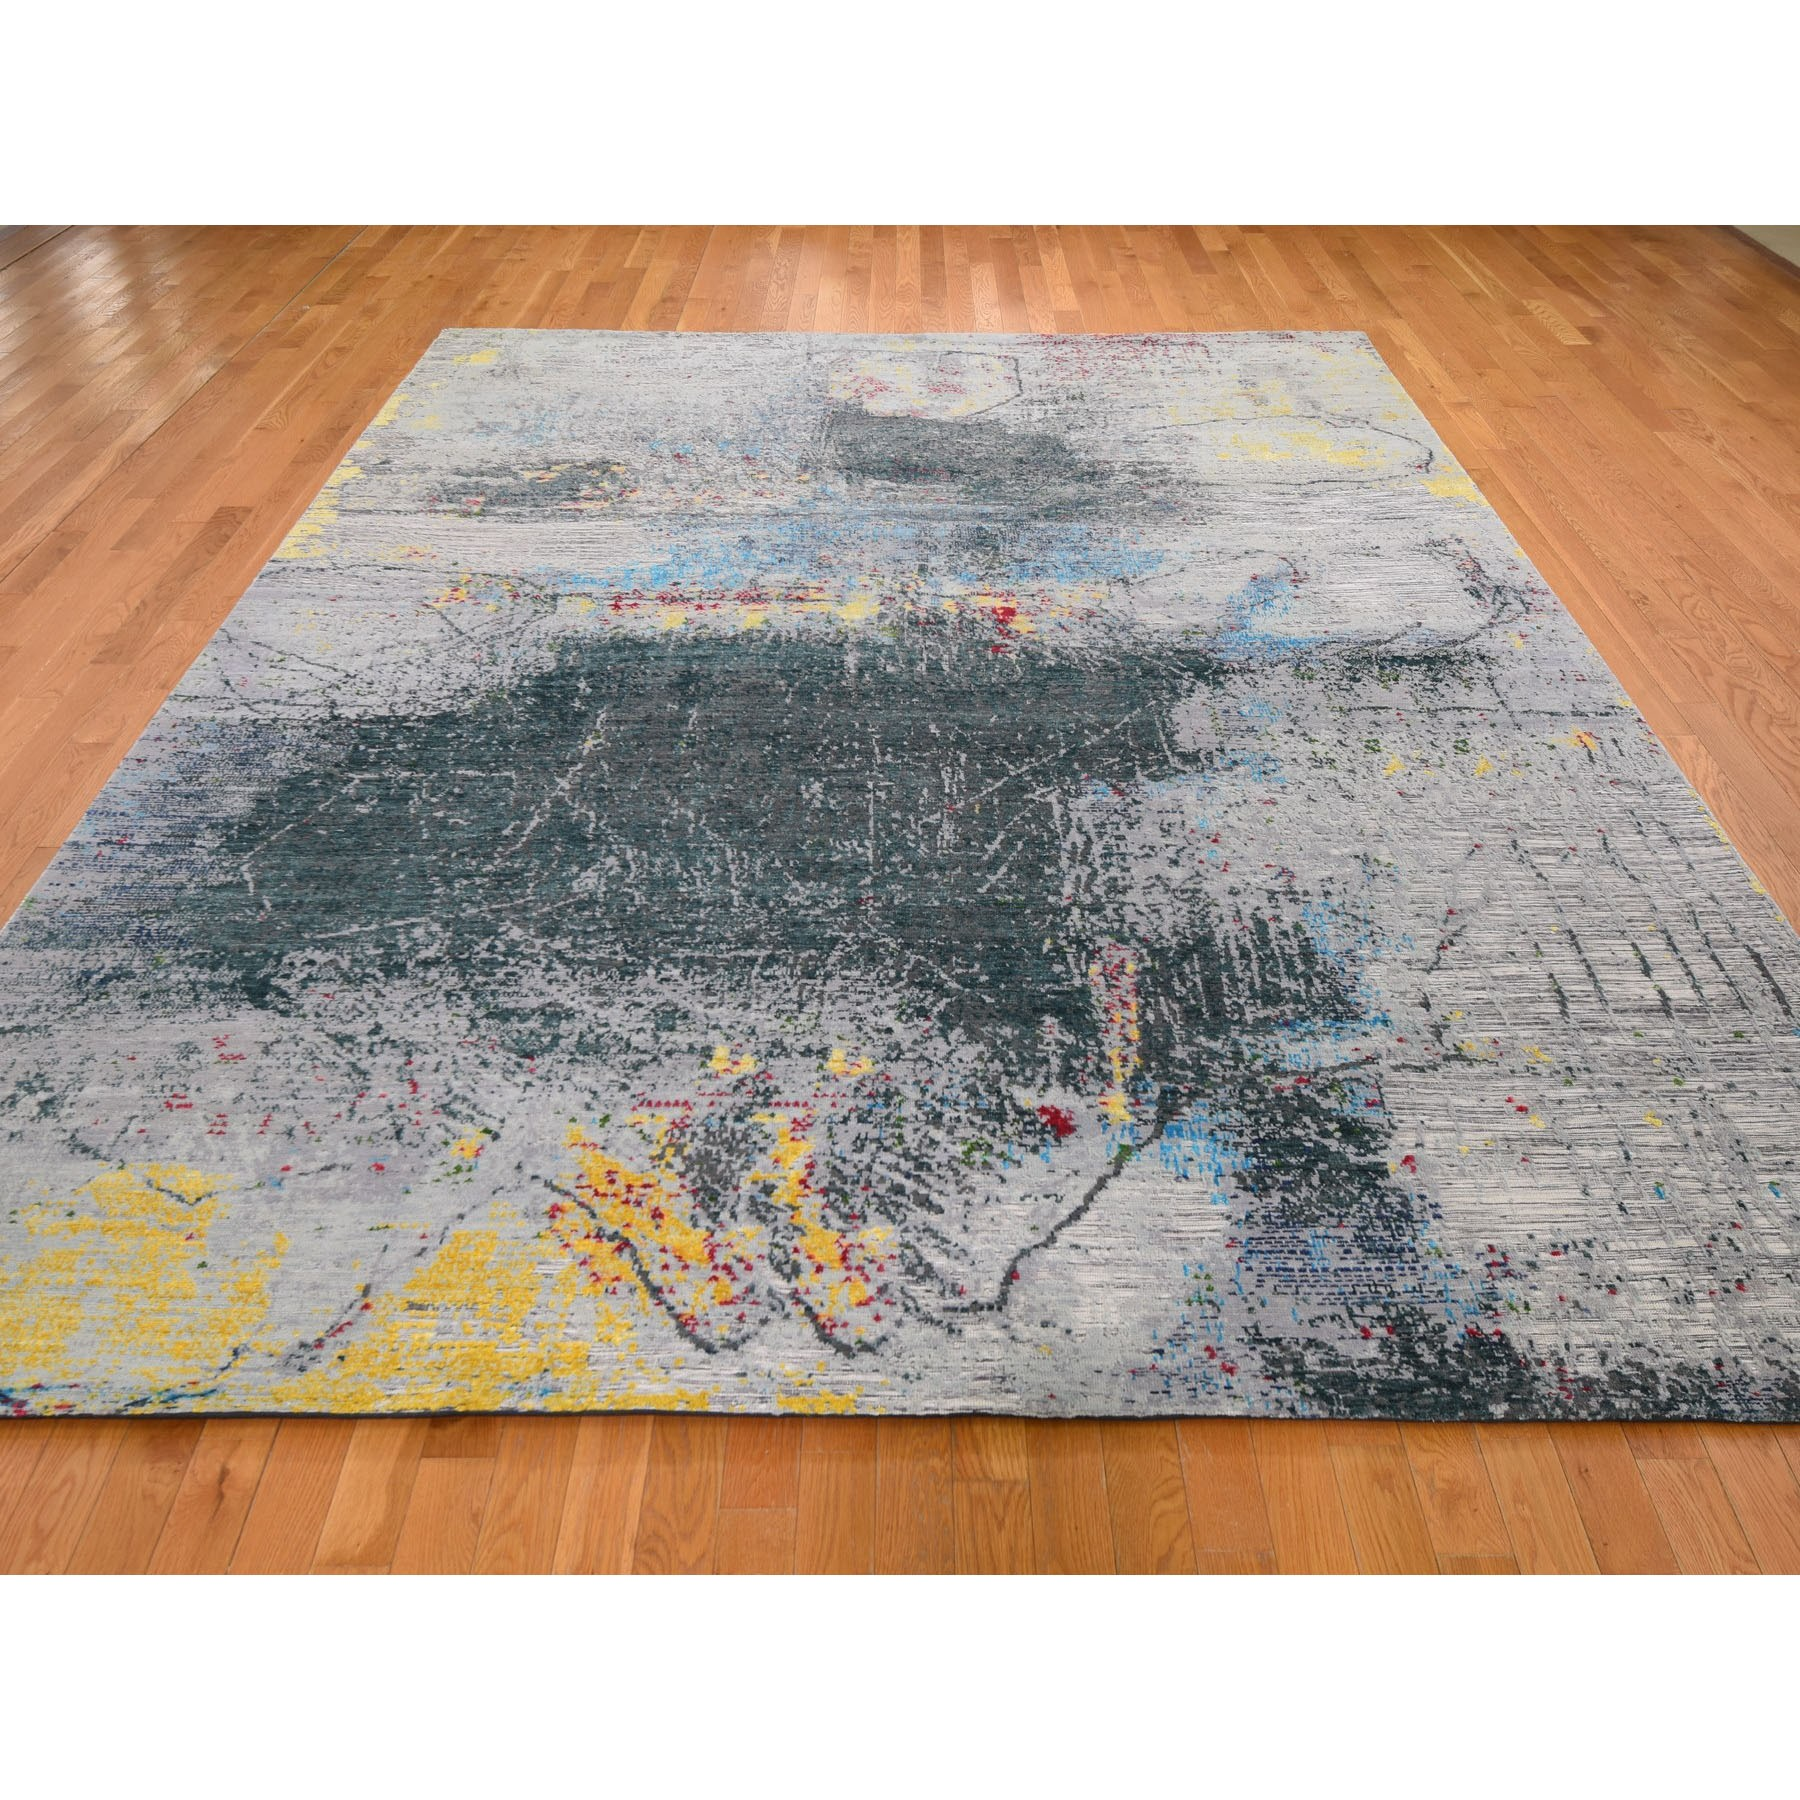 "9'2""x11'8"" Sari Silk With Textured Wool Abstract Design Hand Woven Oriental Rug"